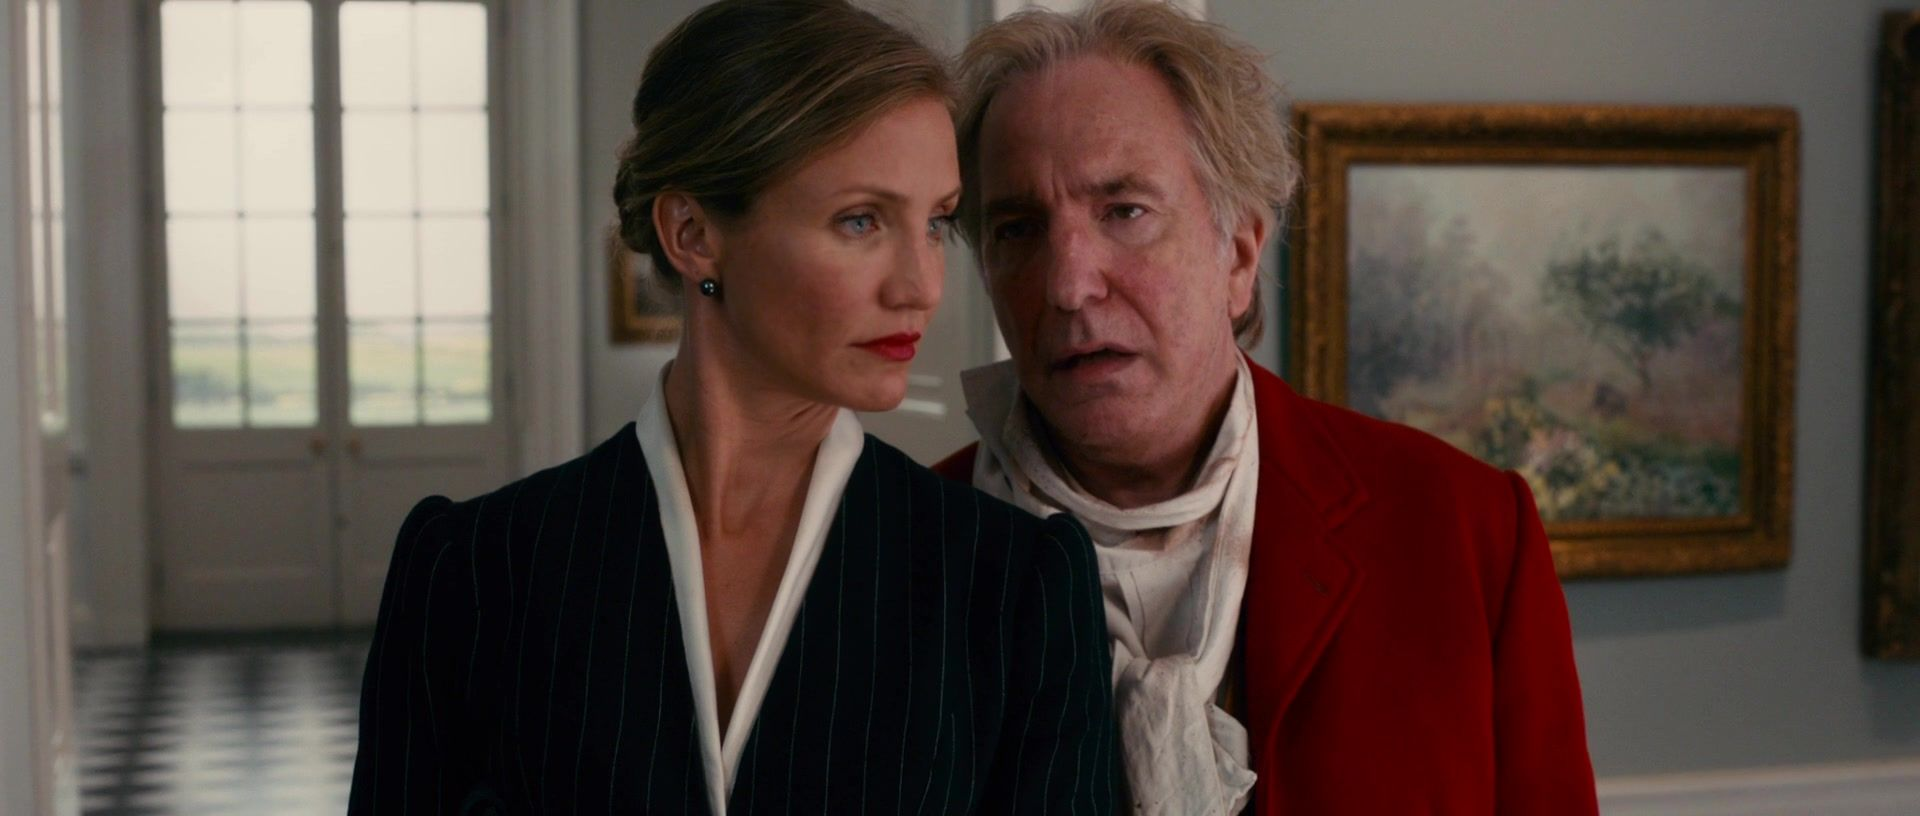 g3 20 Things You Might Not Have Realised About The Late Alan Rickman